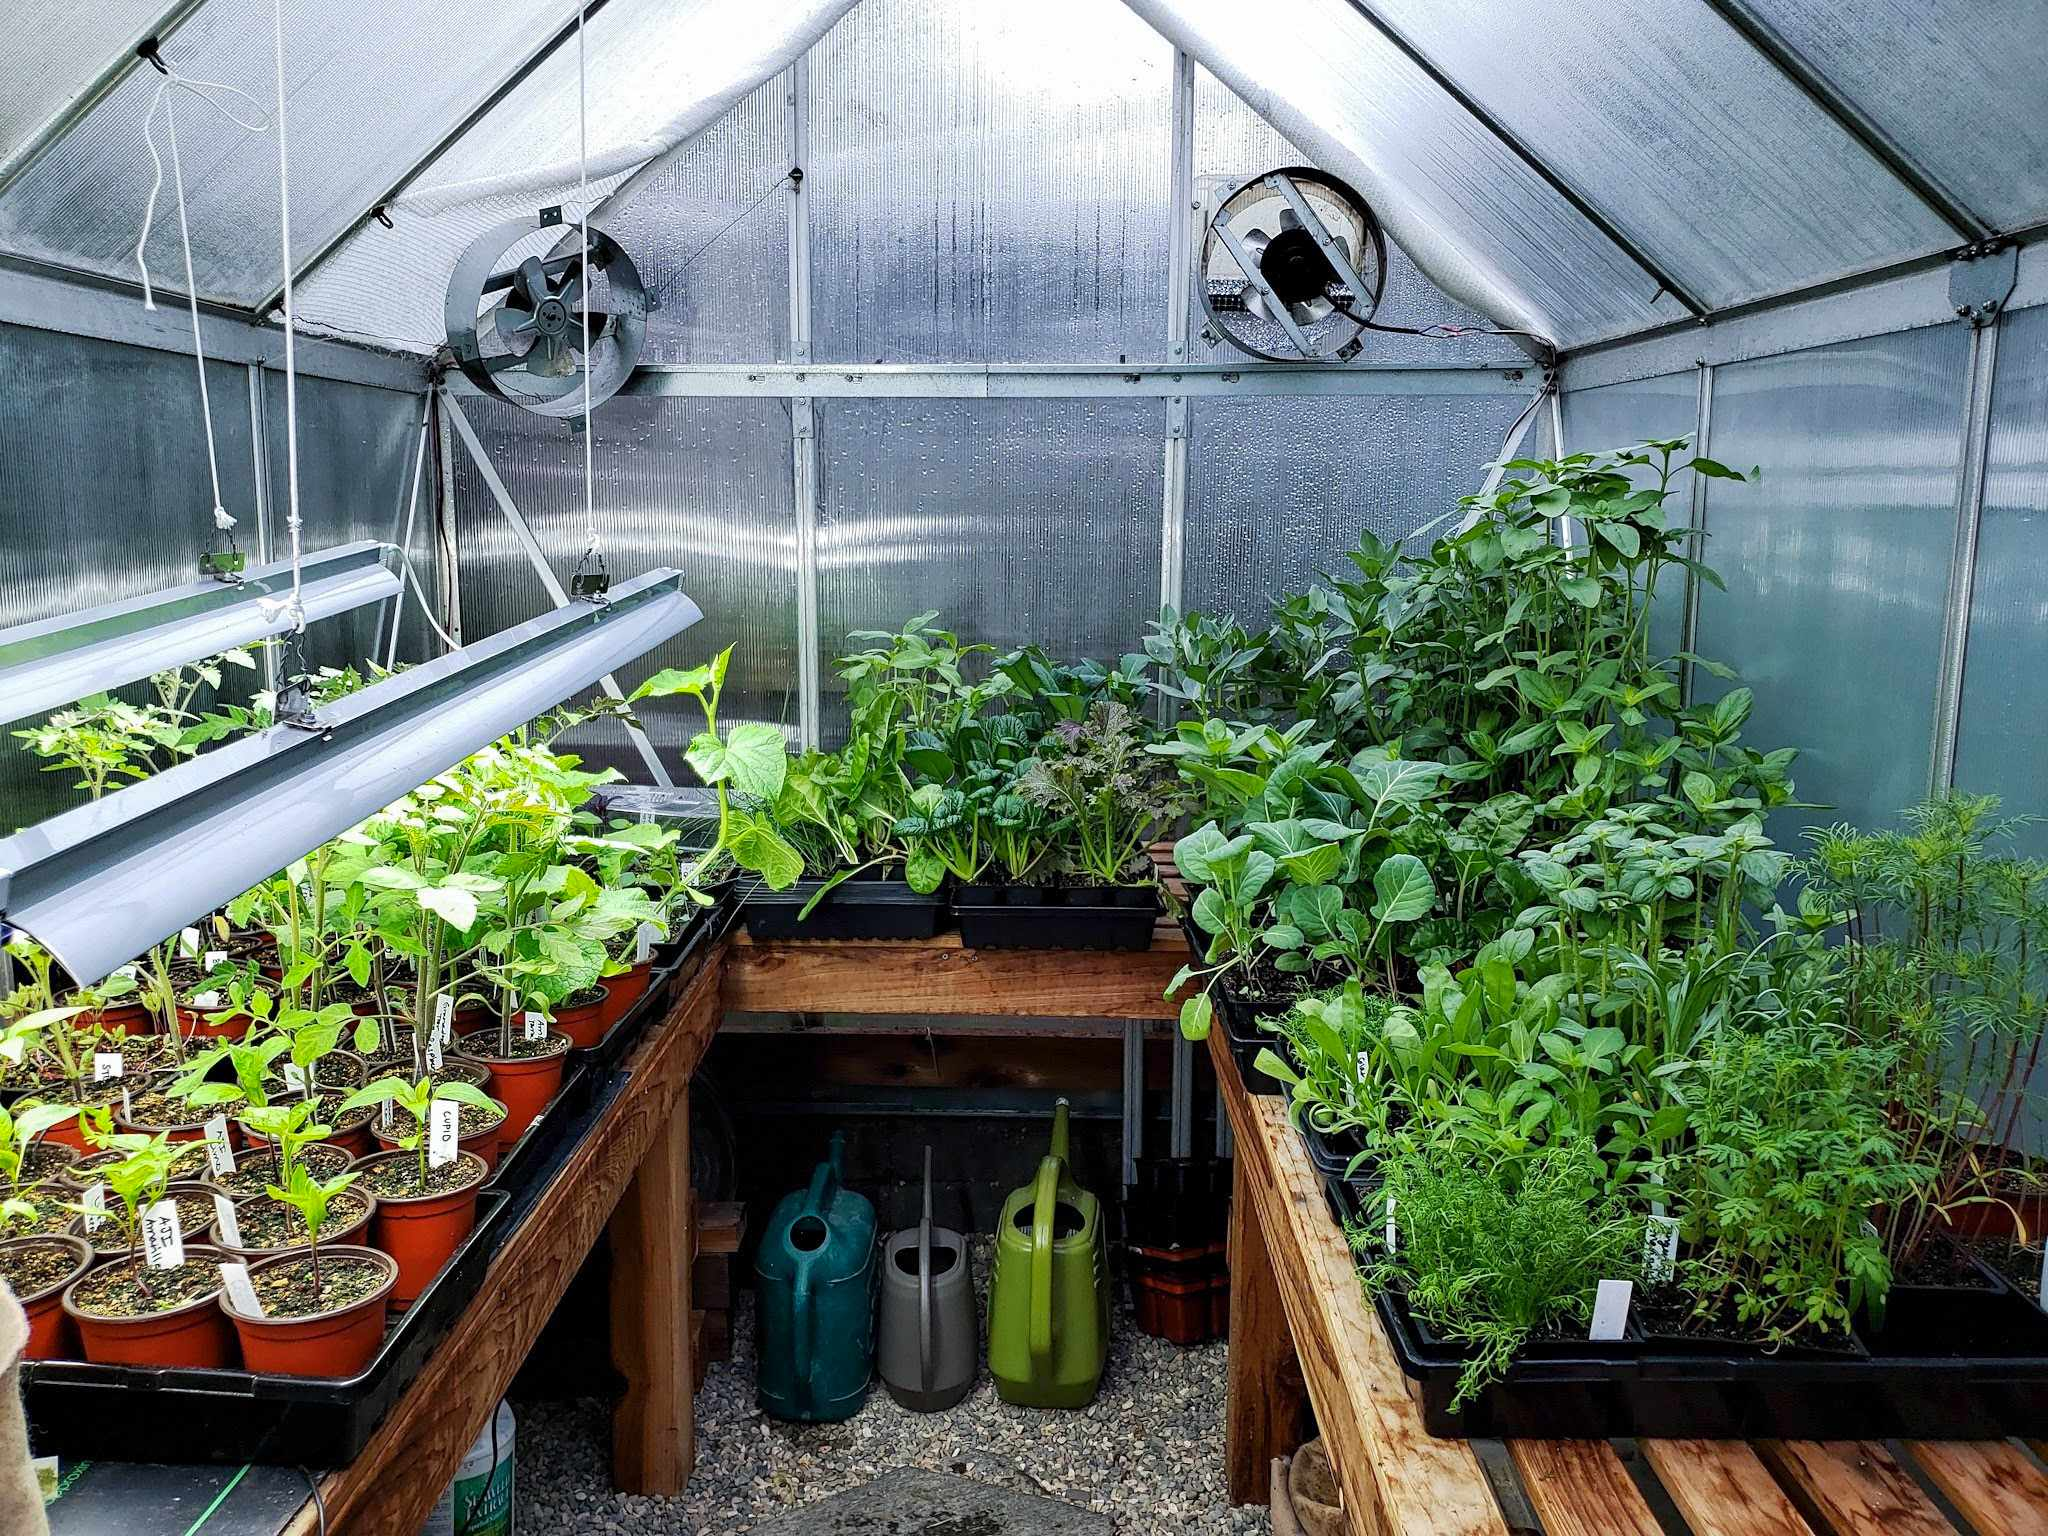 a view inside a small hobby greenhouse, showing slatted redwood benches full of containers of seedlings.